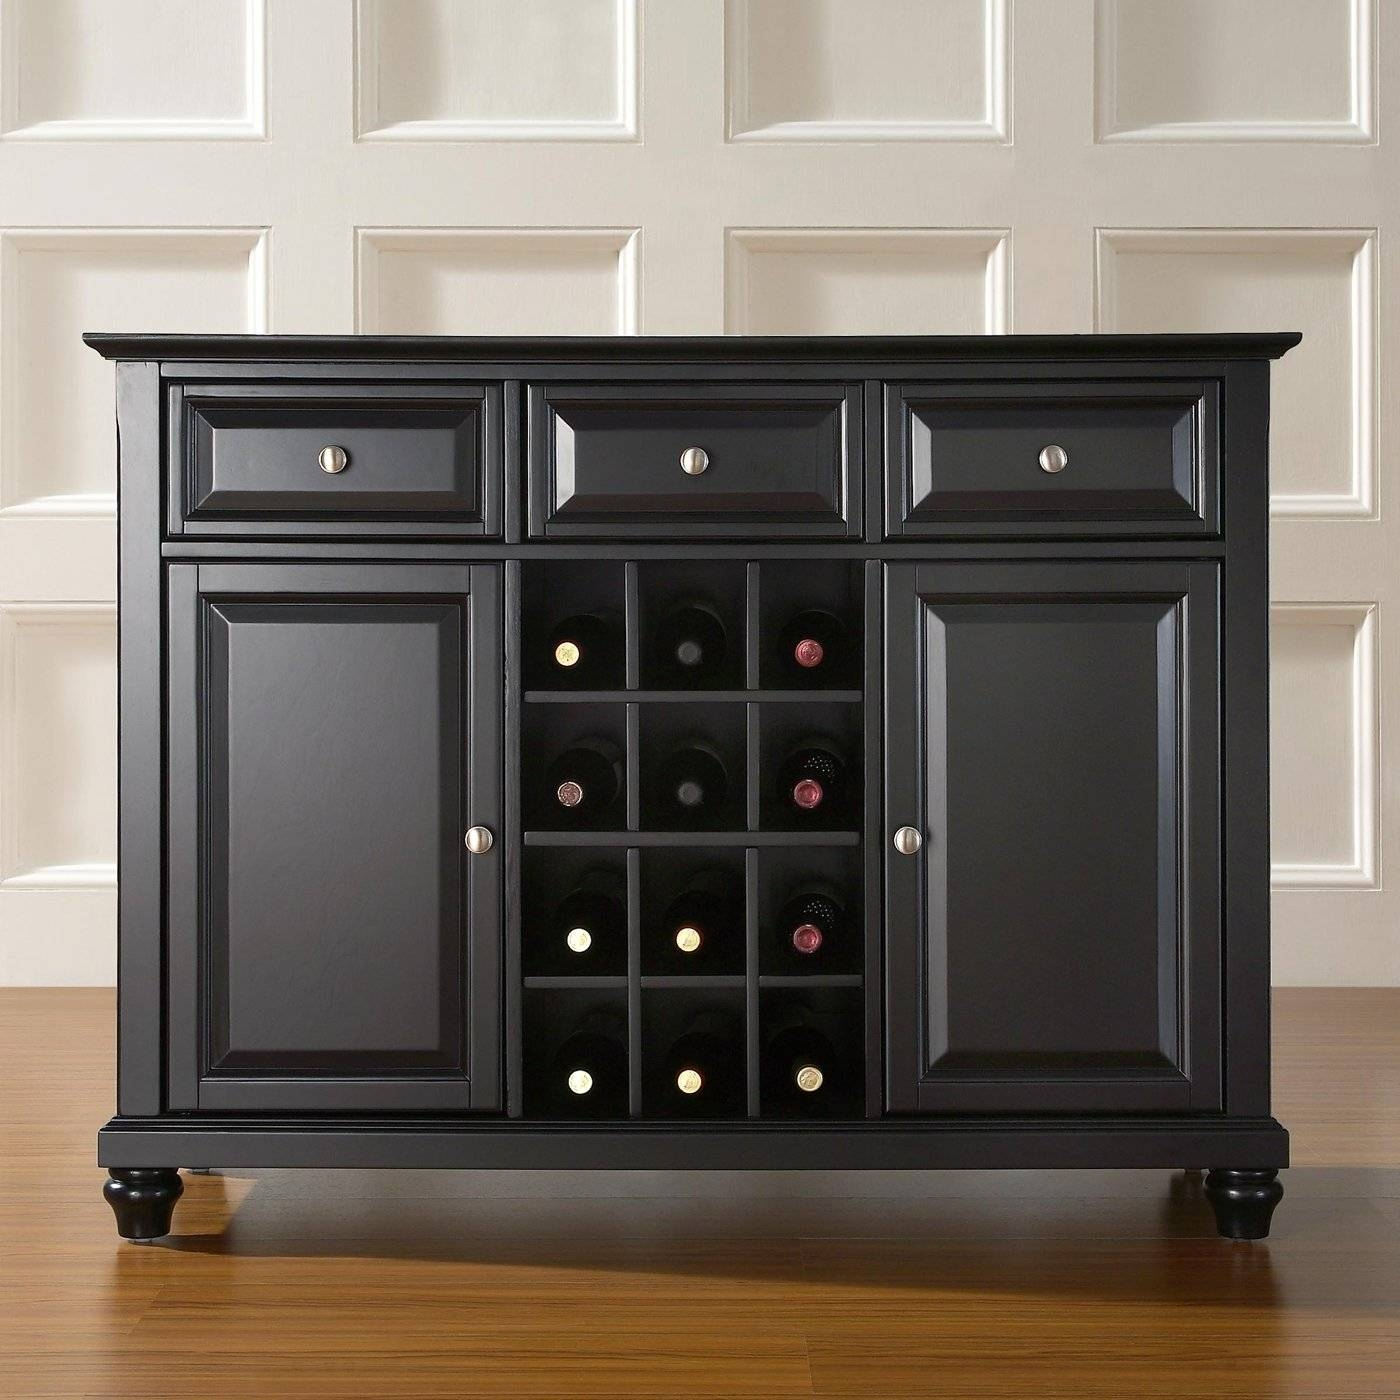 Dining Room Servers Buffet Furniture Pictures Cabinet Trends And intended for Thin Sideboards (Image 3 of 30)